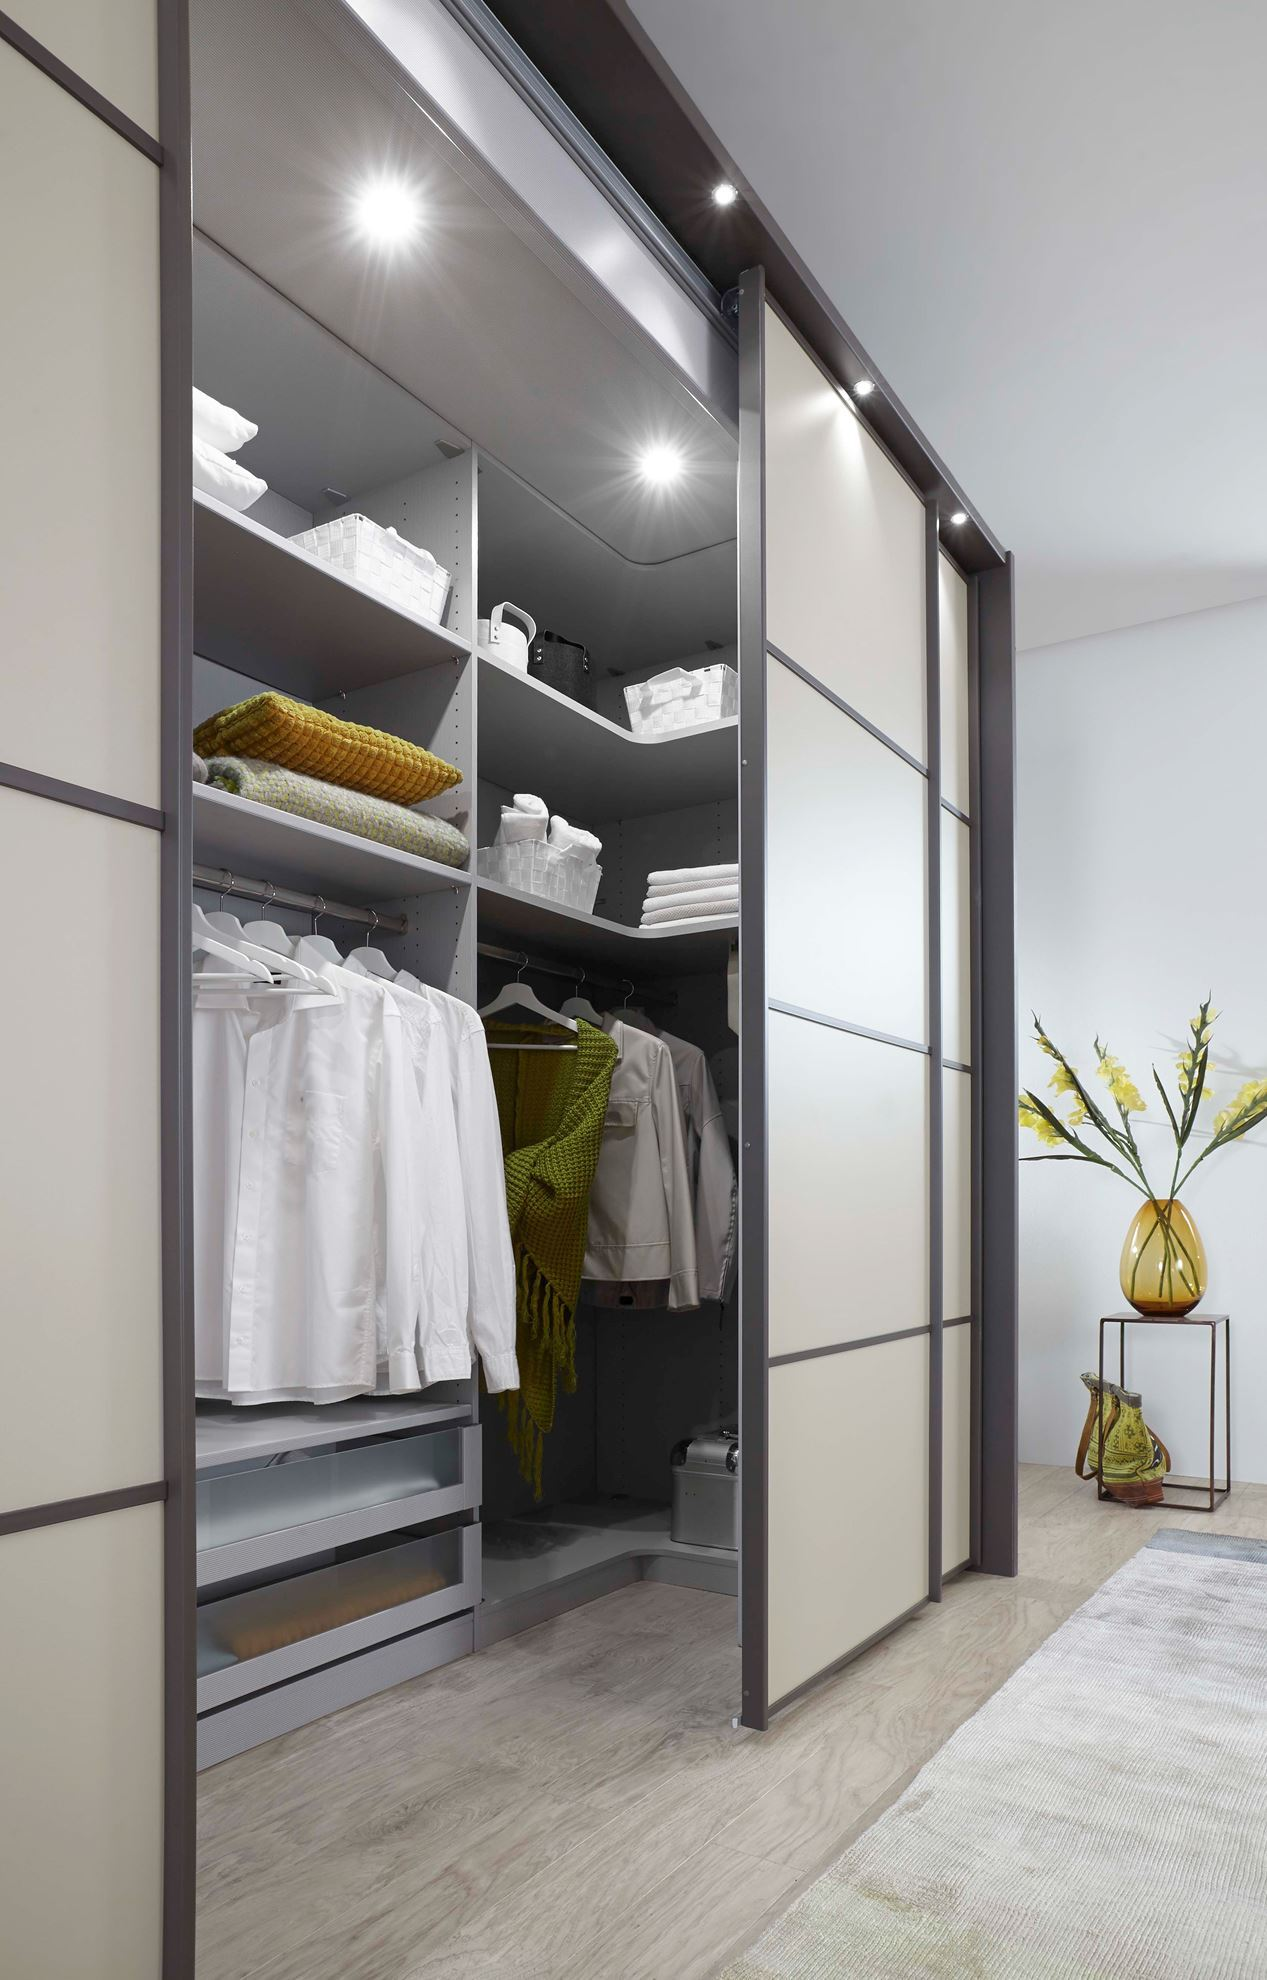 Chambre à Coucher Wiemann Wiemann Multiplus 330cm Walk In Wardrobe Linea Design